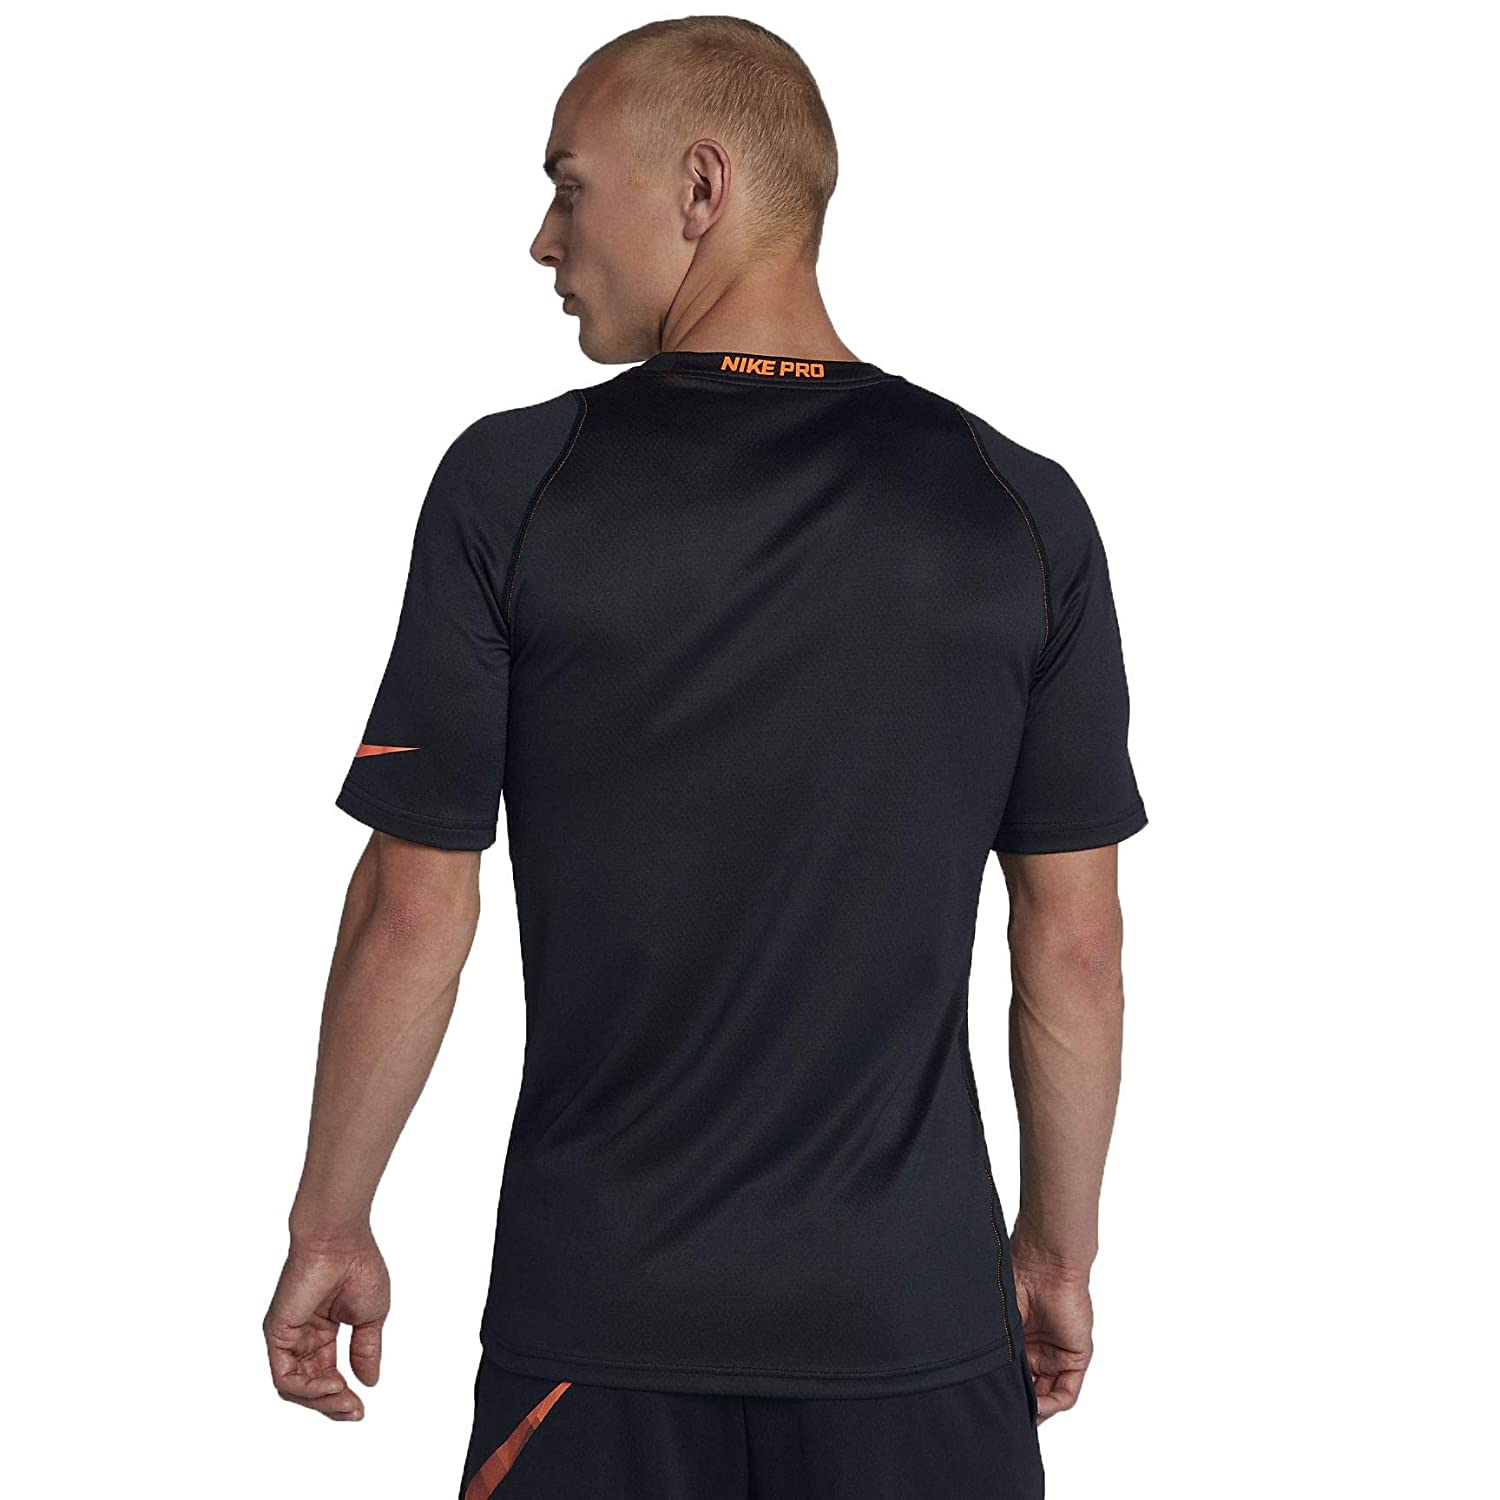 NIKE Mens Pro Fitted Short Sleeve Shirt